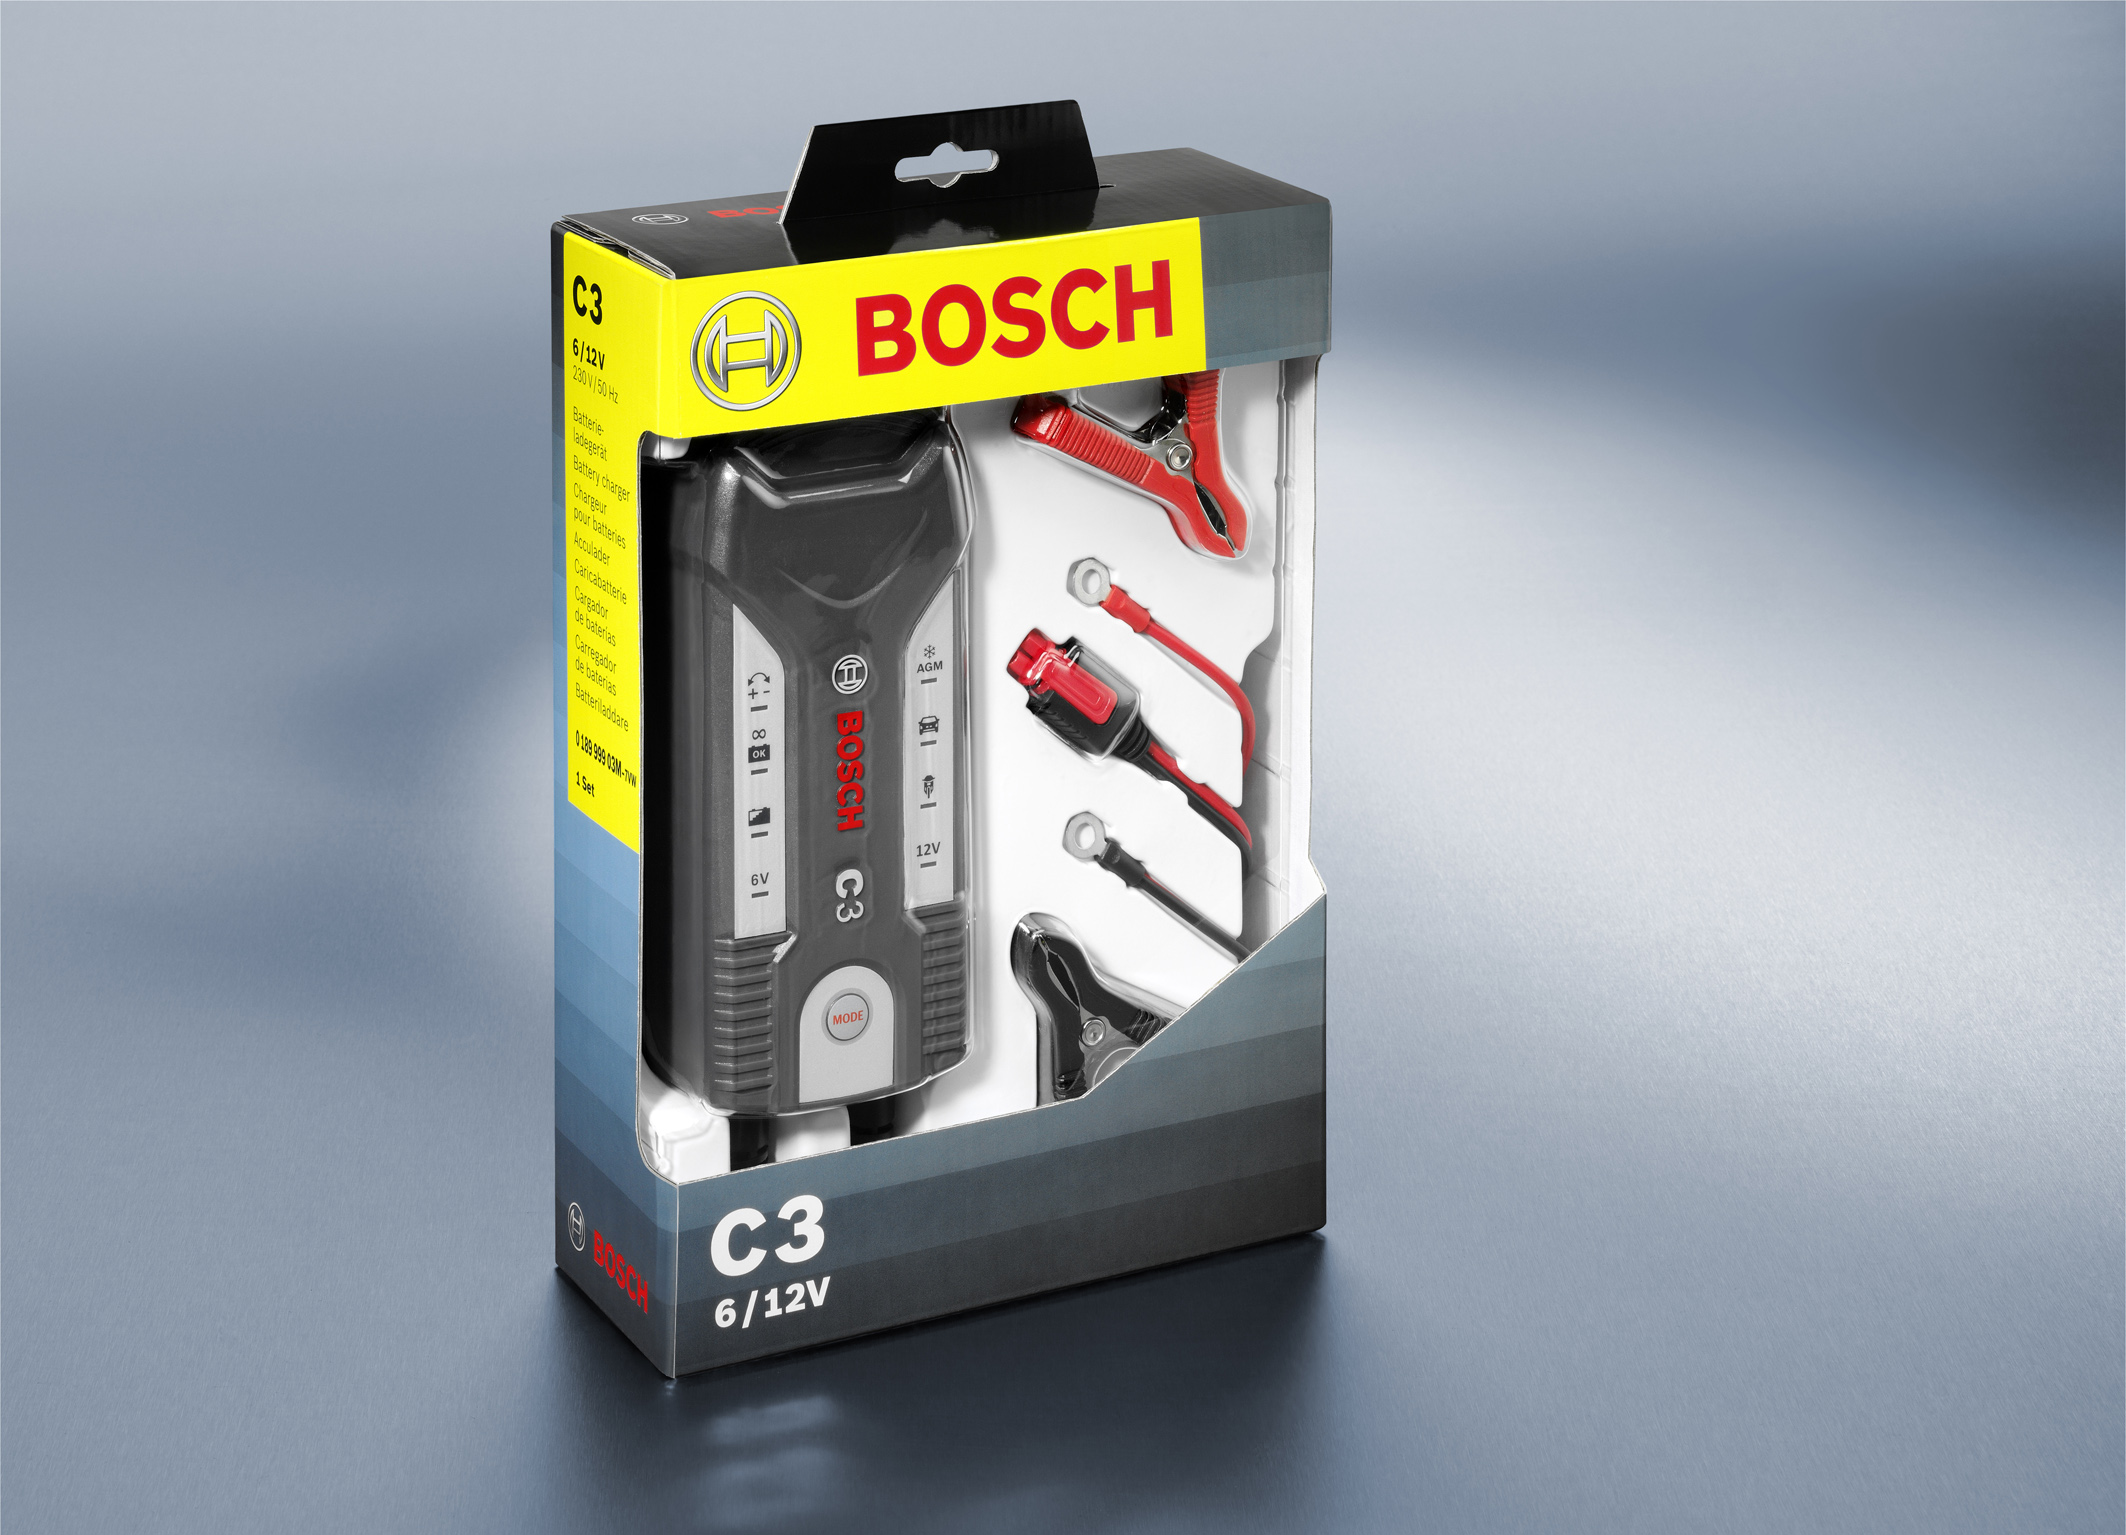 new functions make the bosch c3 and c7 battery chargers more user friendly bosch media service. Black Bedroom Furniture Sets. Home Design Ideas